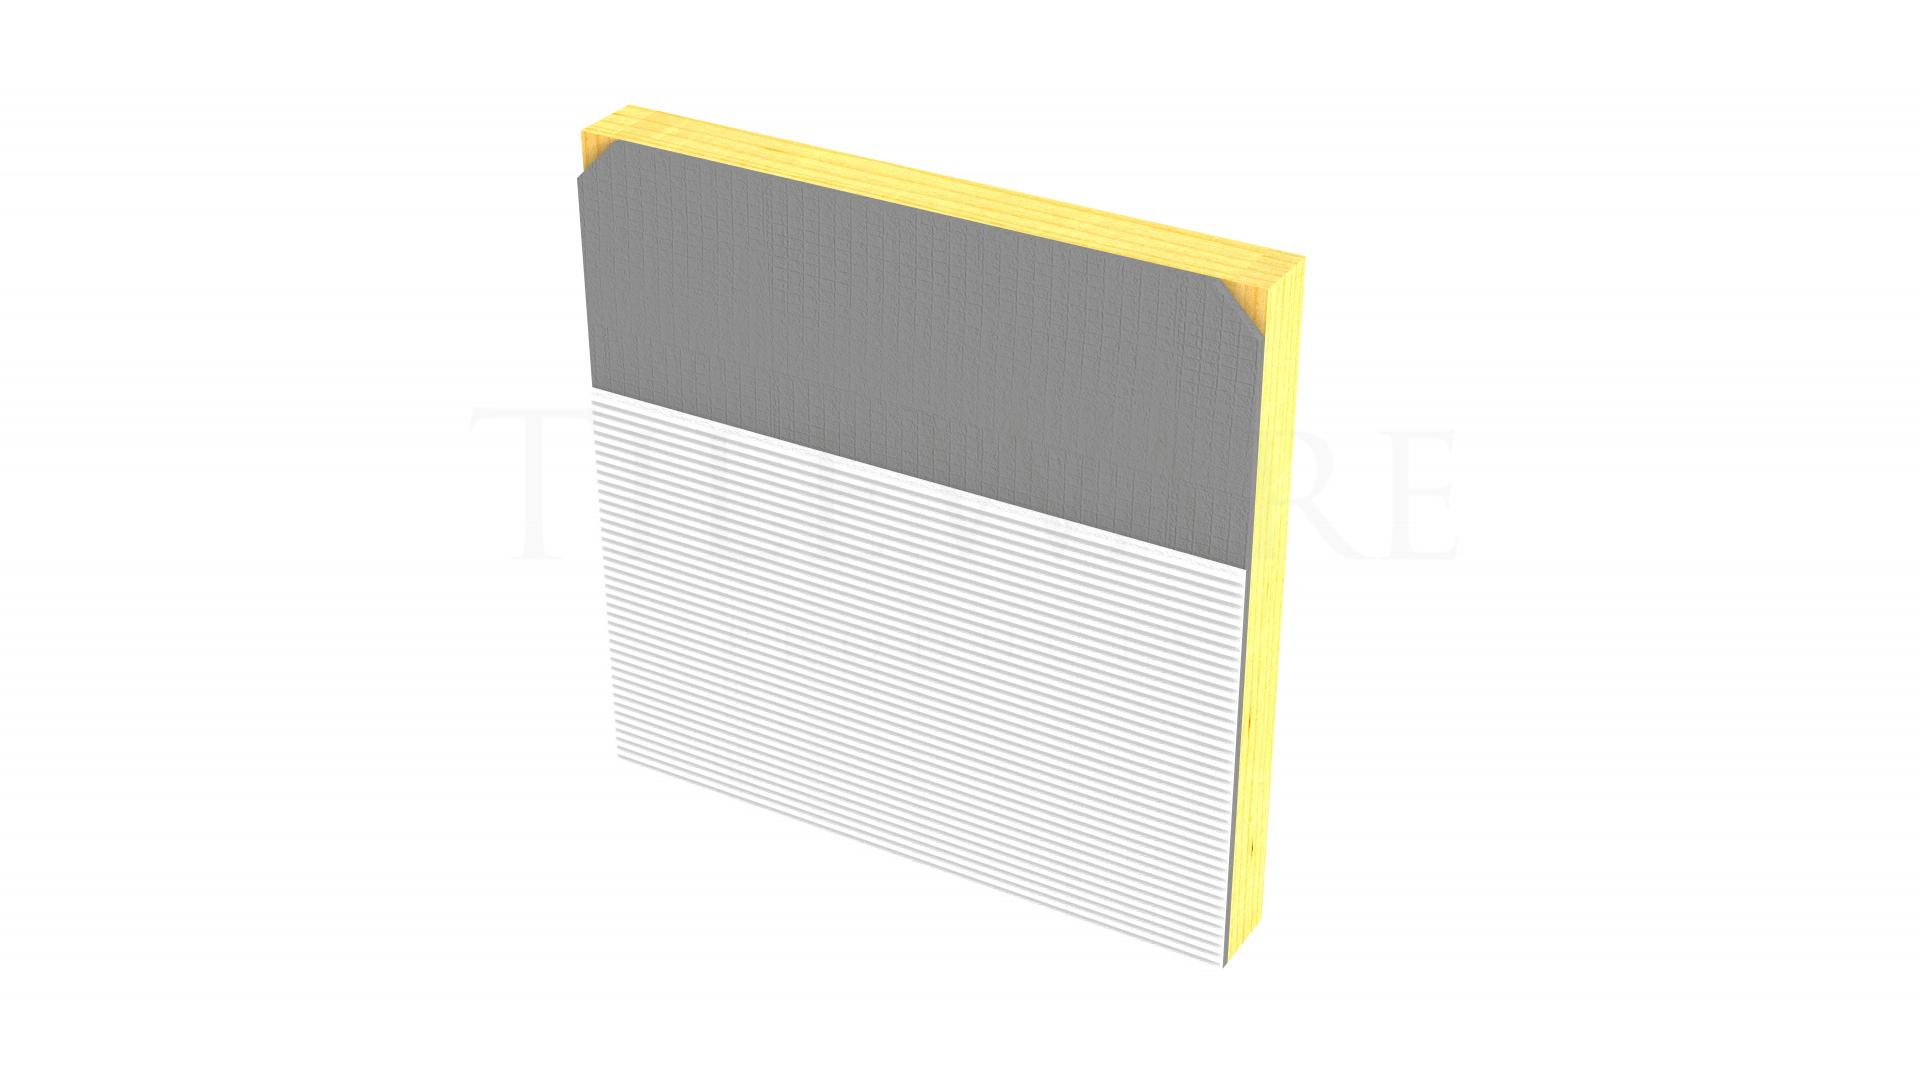 T100-030 - Combination Basket (Slideshow) | TileWare Products